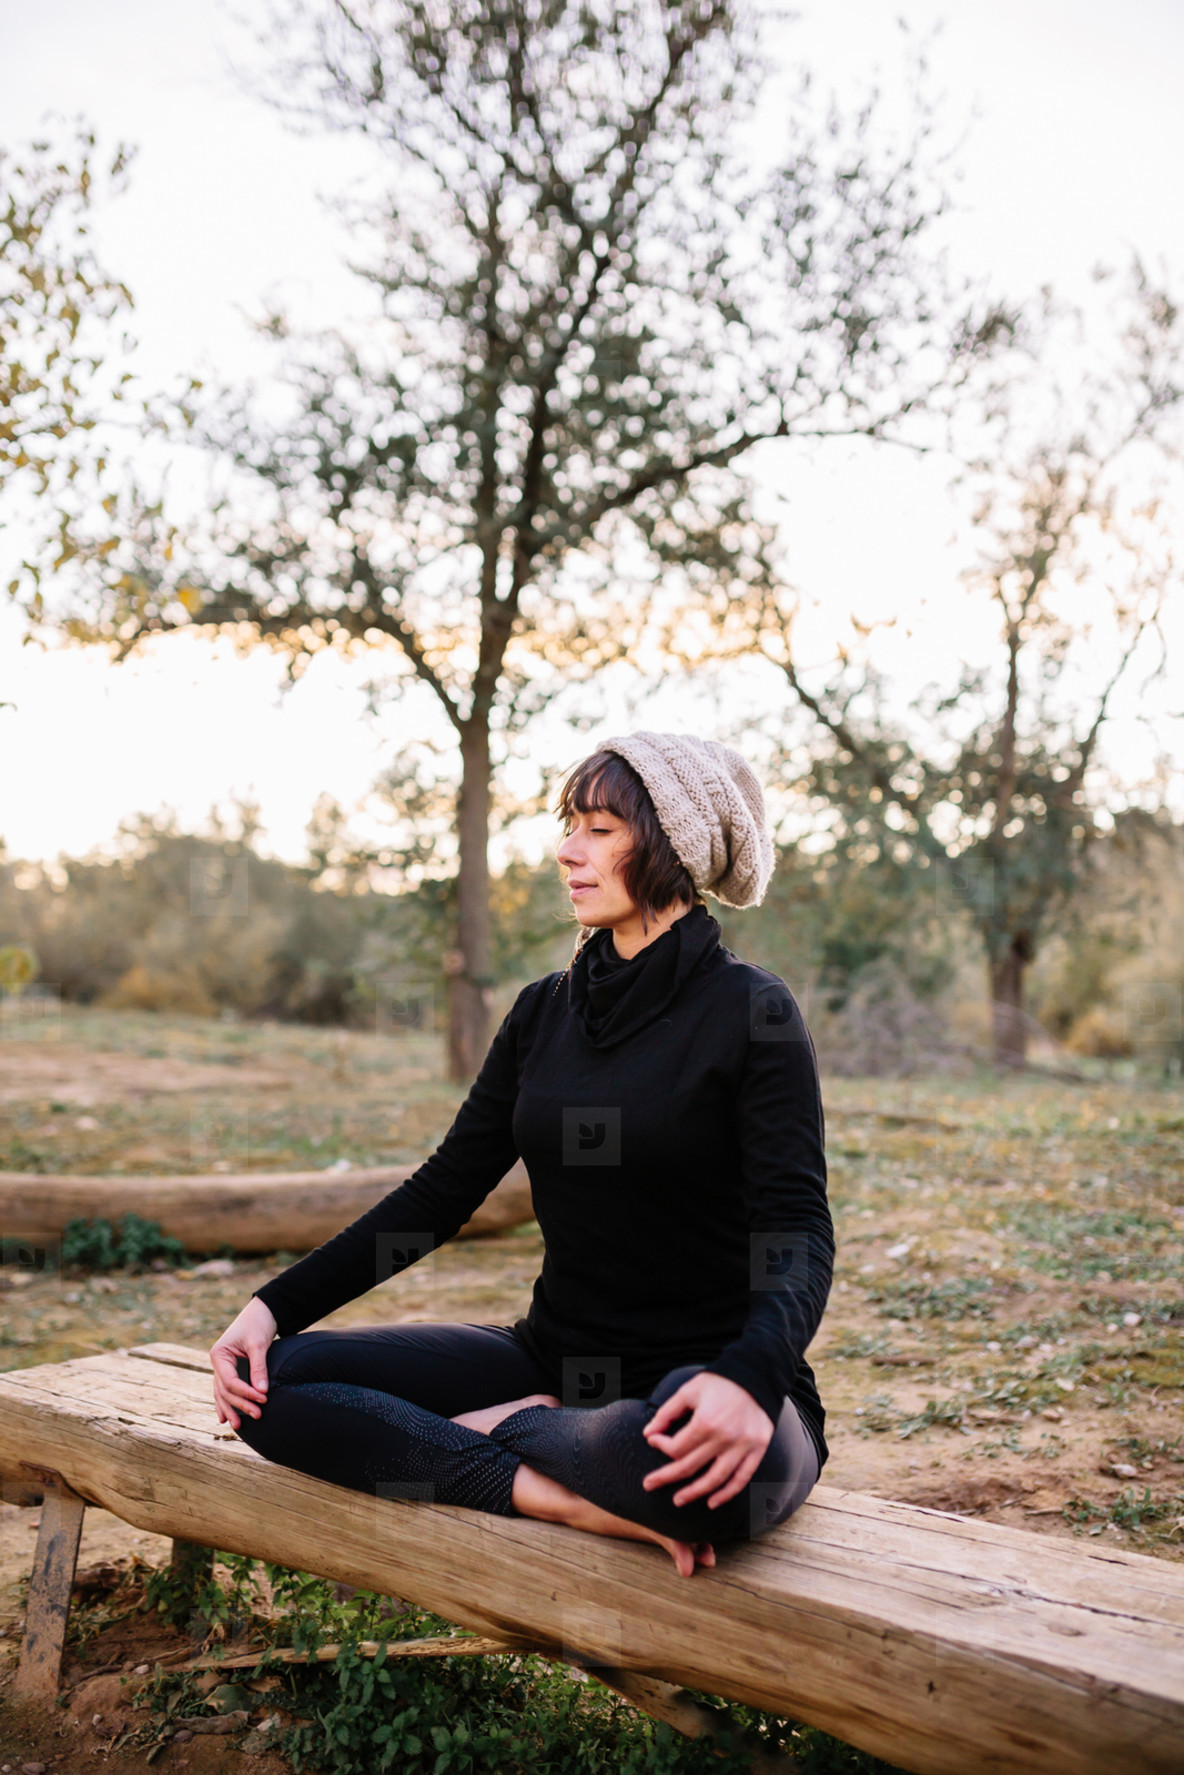 Woman practicing yoga and meditating on the park bench